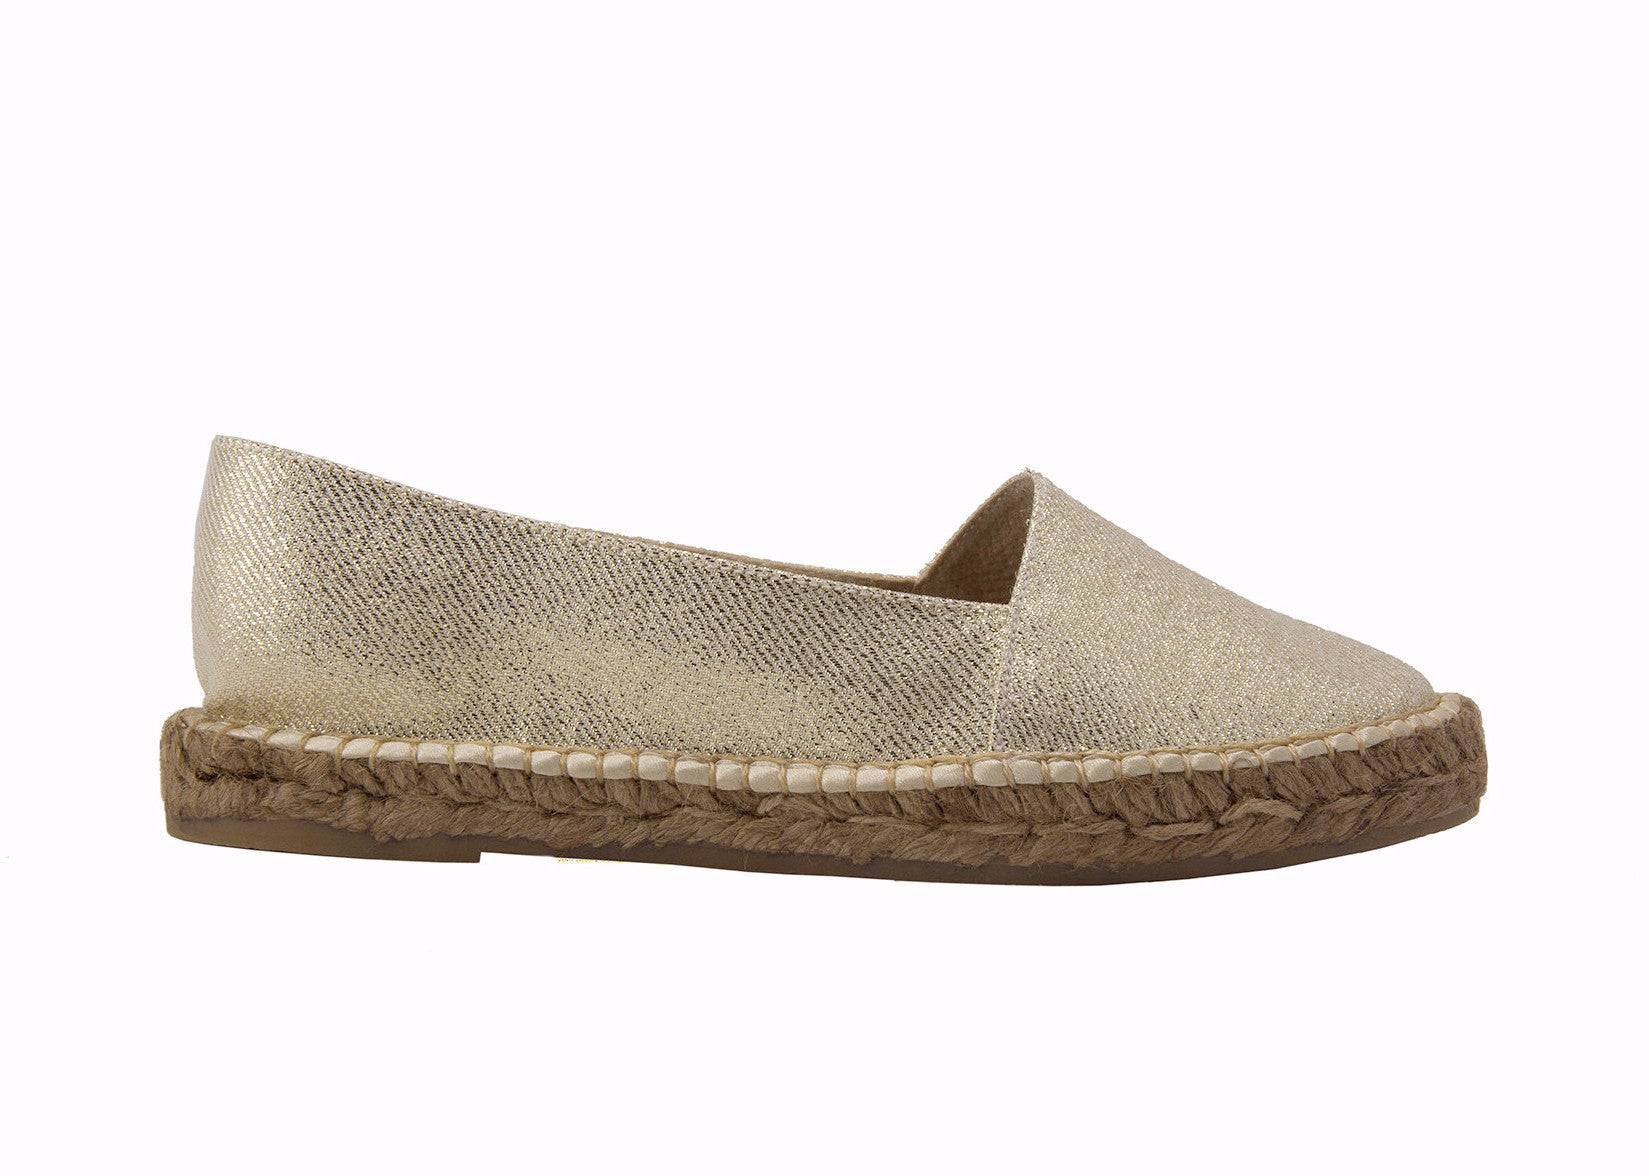 NUBE espadrilles [size 41 available]